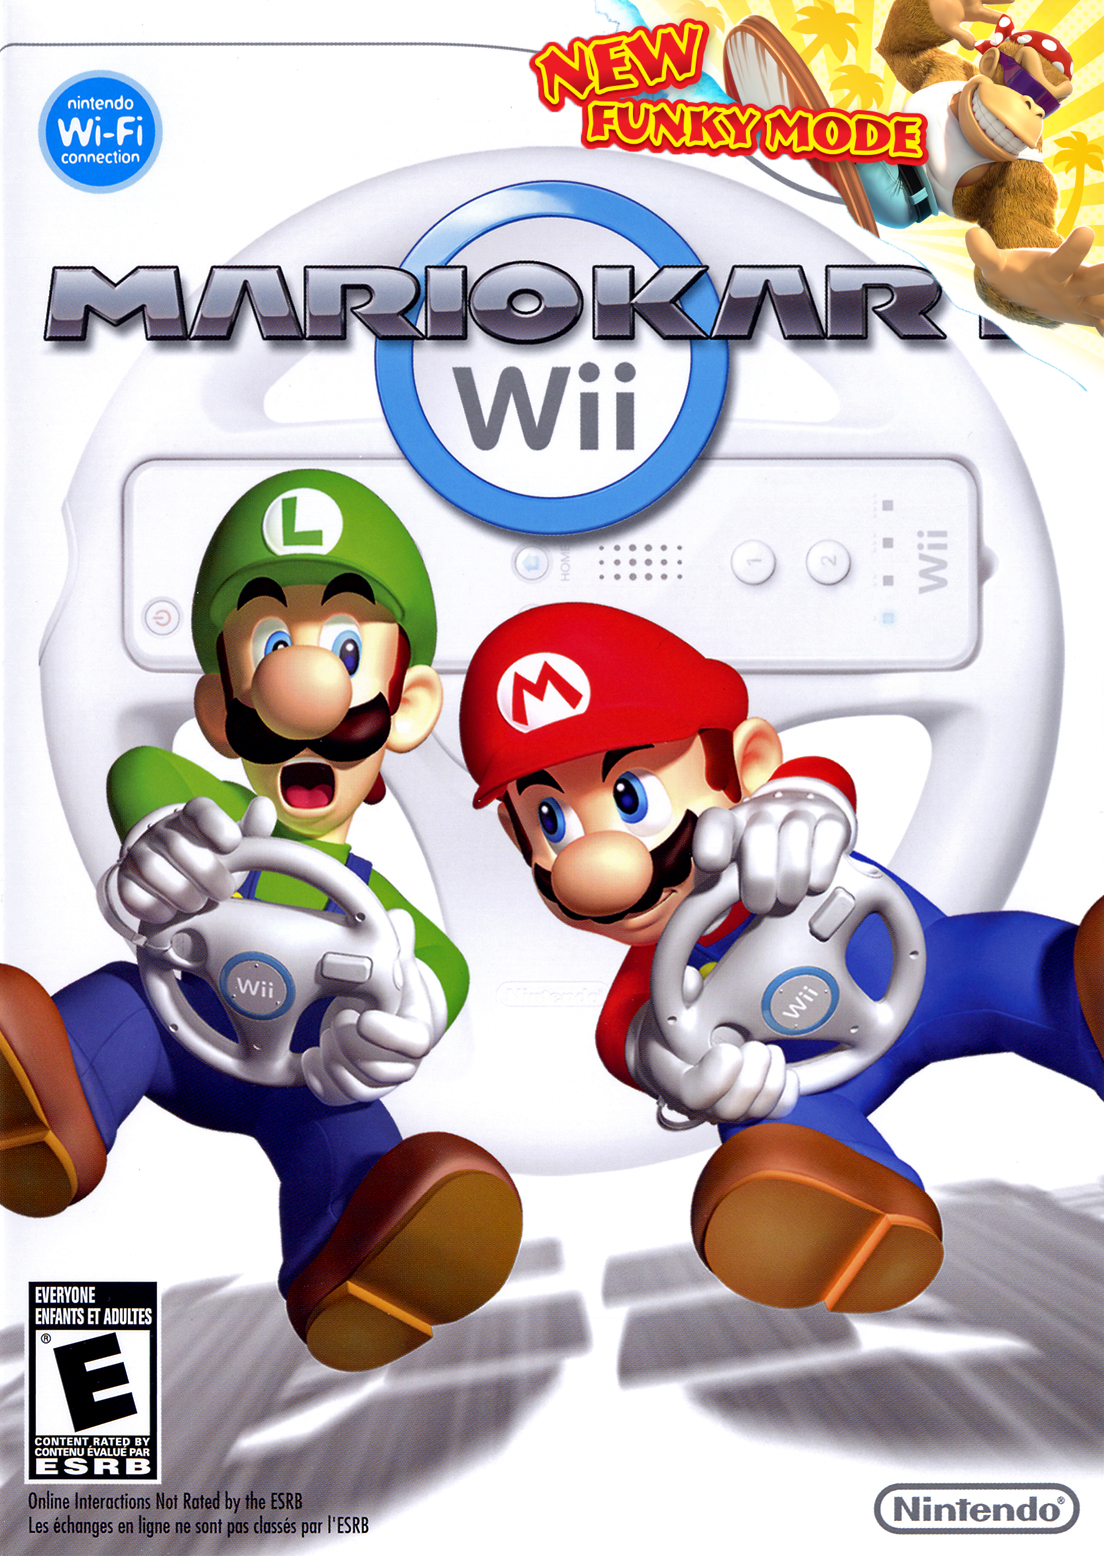 You Can Now Update The Mario Kart Wii Box To Better Reflect The Game Nintendo Mario Kart Wii Wii Games